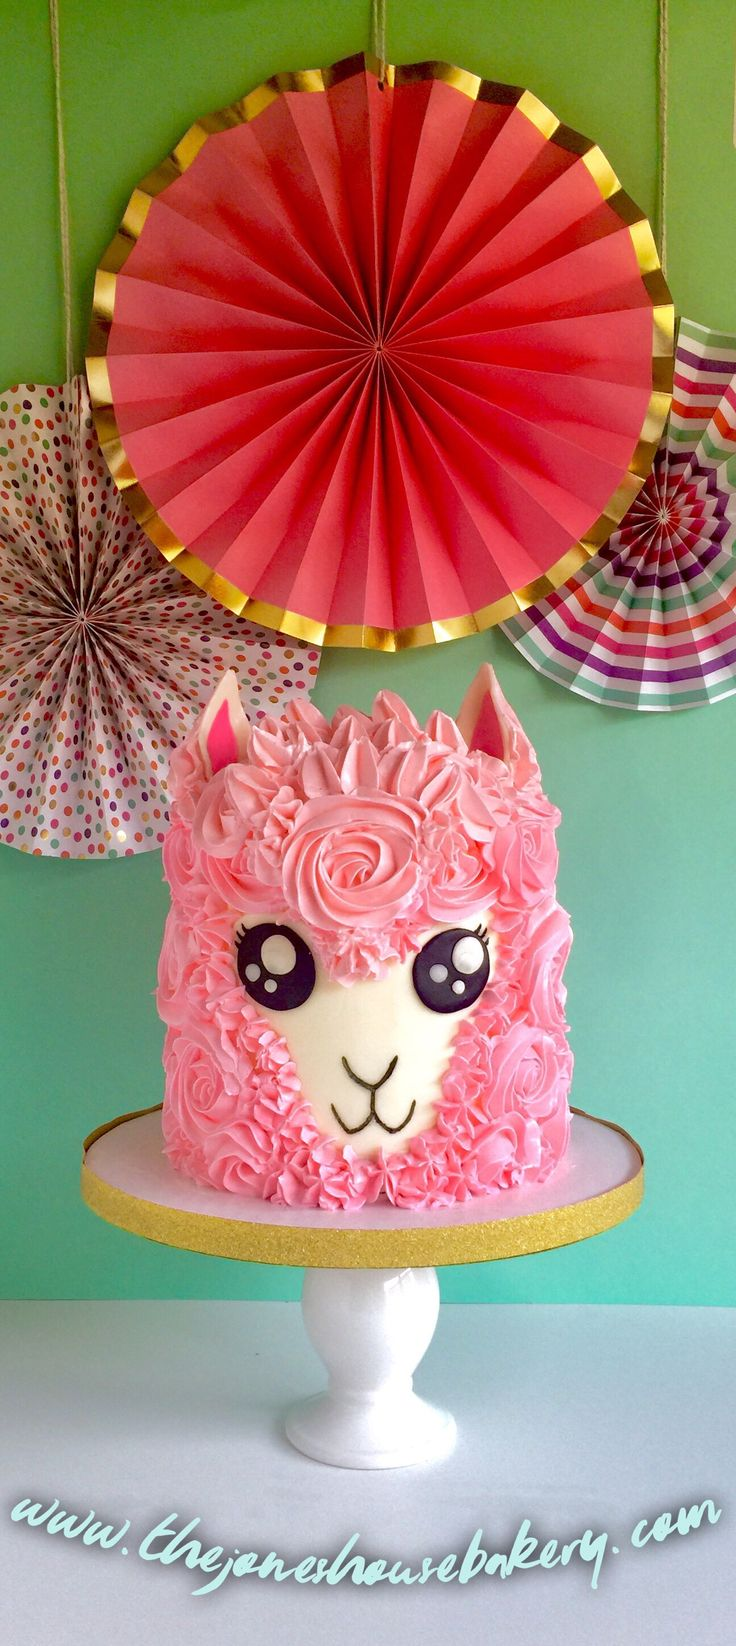 Alpaca Cake - I made this cake very similar to the unicorn cake design that are so popular now! Swiss Meringue Buttercream piped like a dream! Loved making the rosettes!